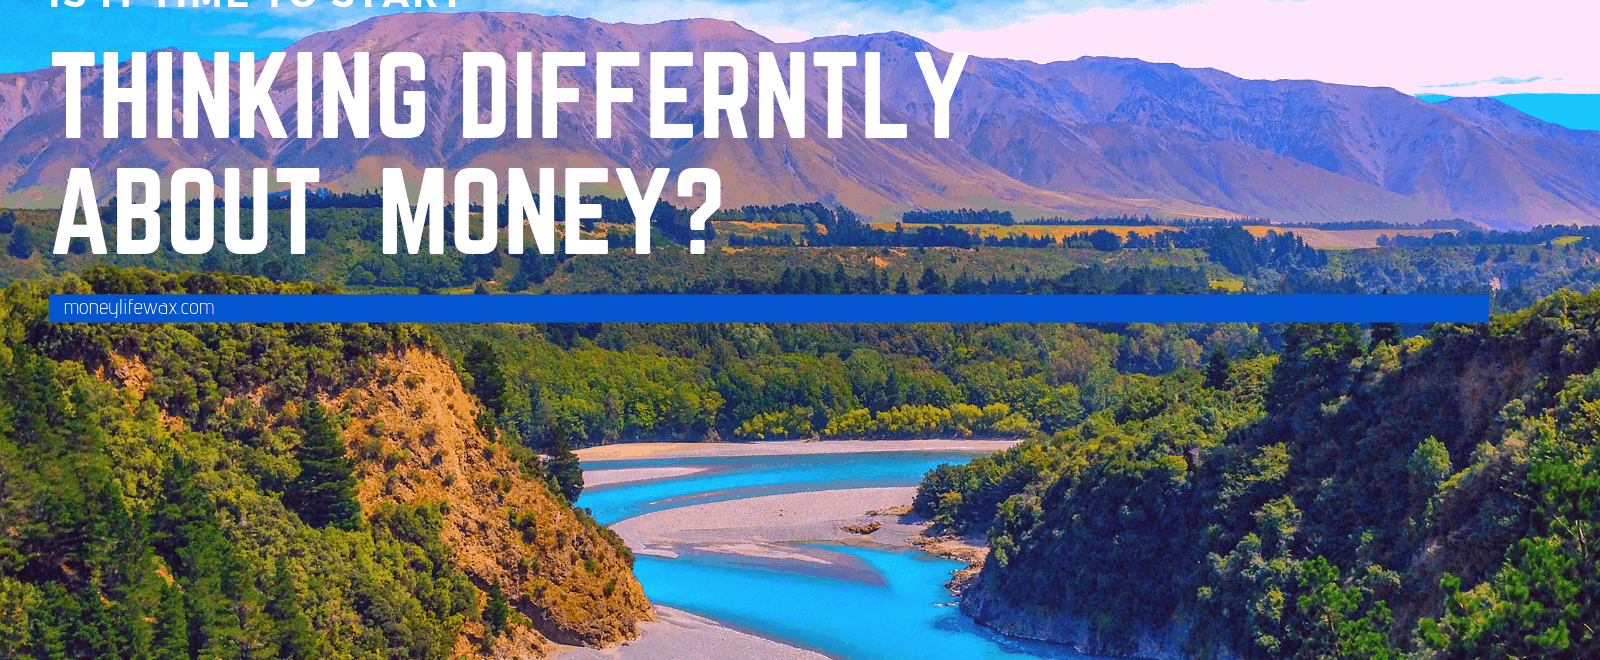 think differently about money